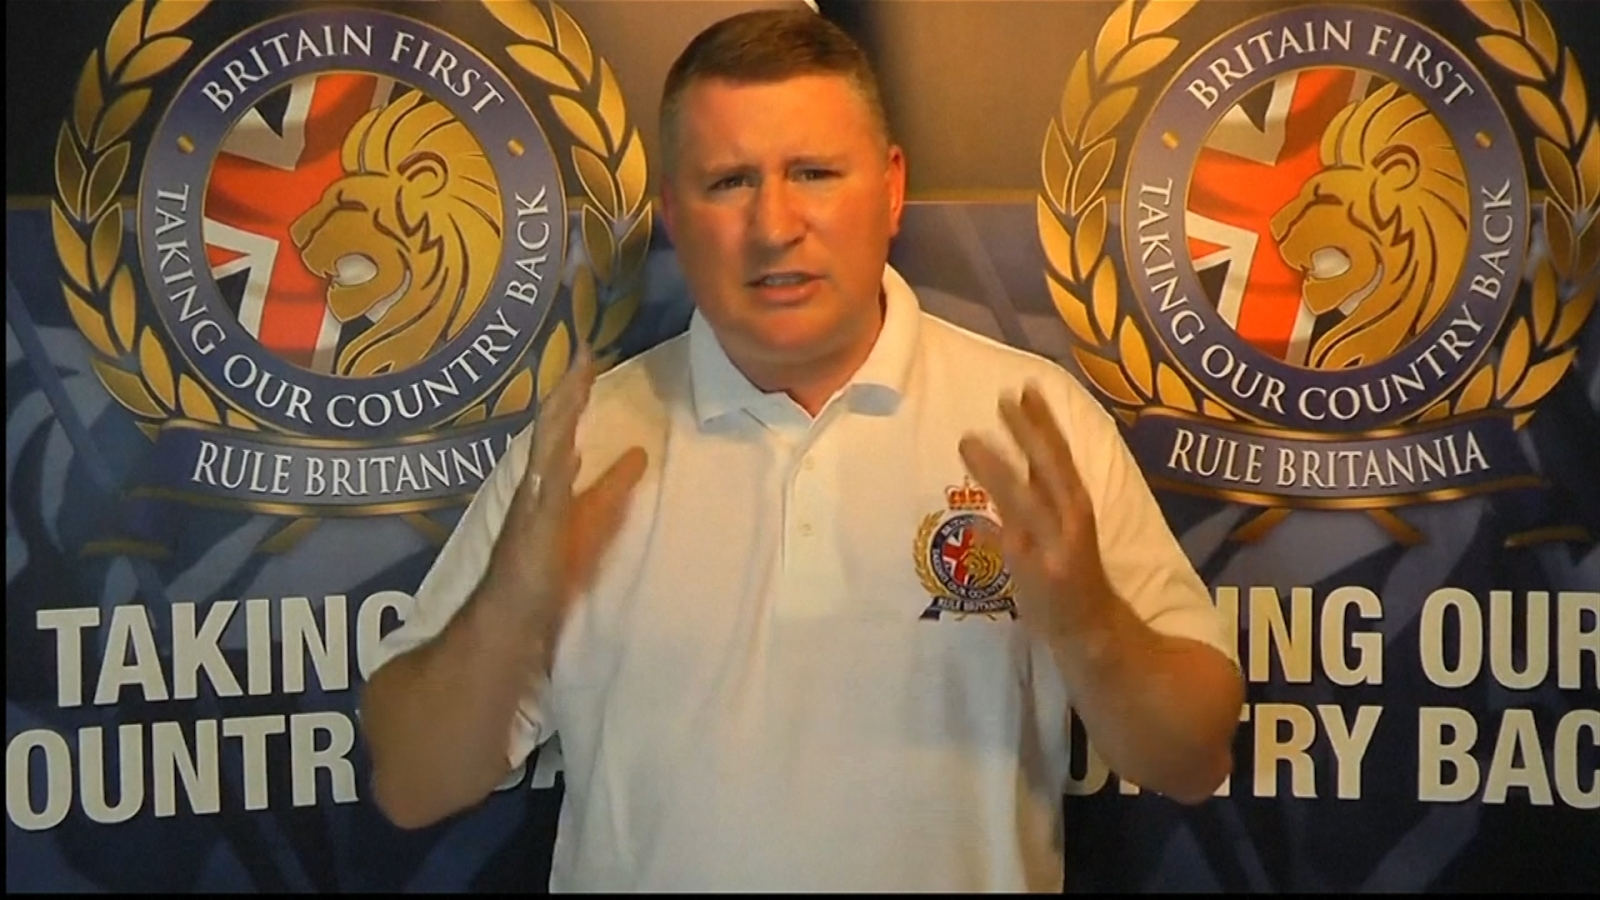 Britain First Leader denies involvement in murder